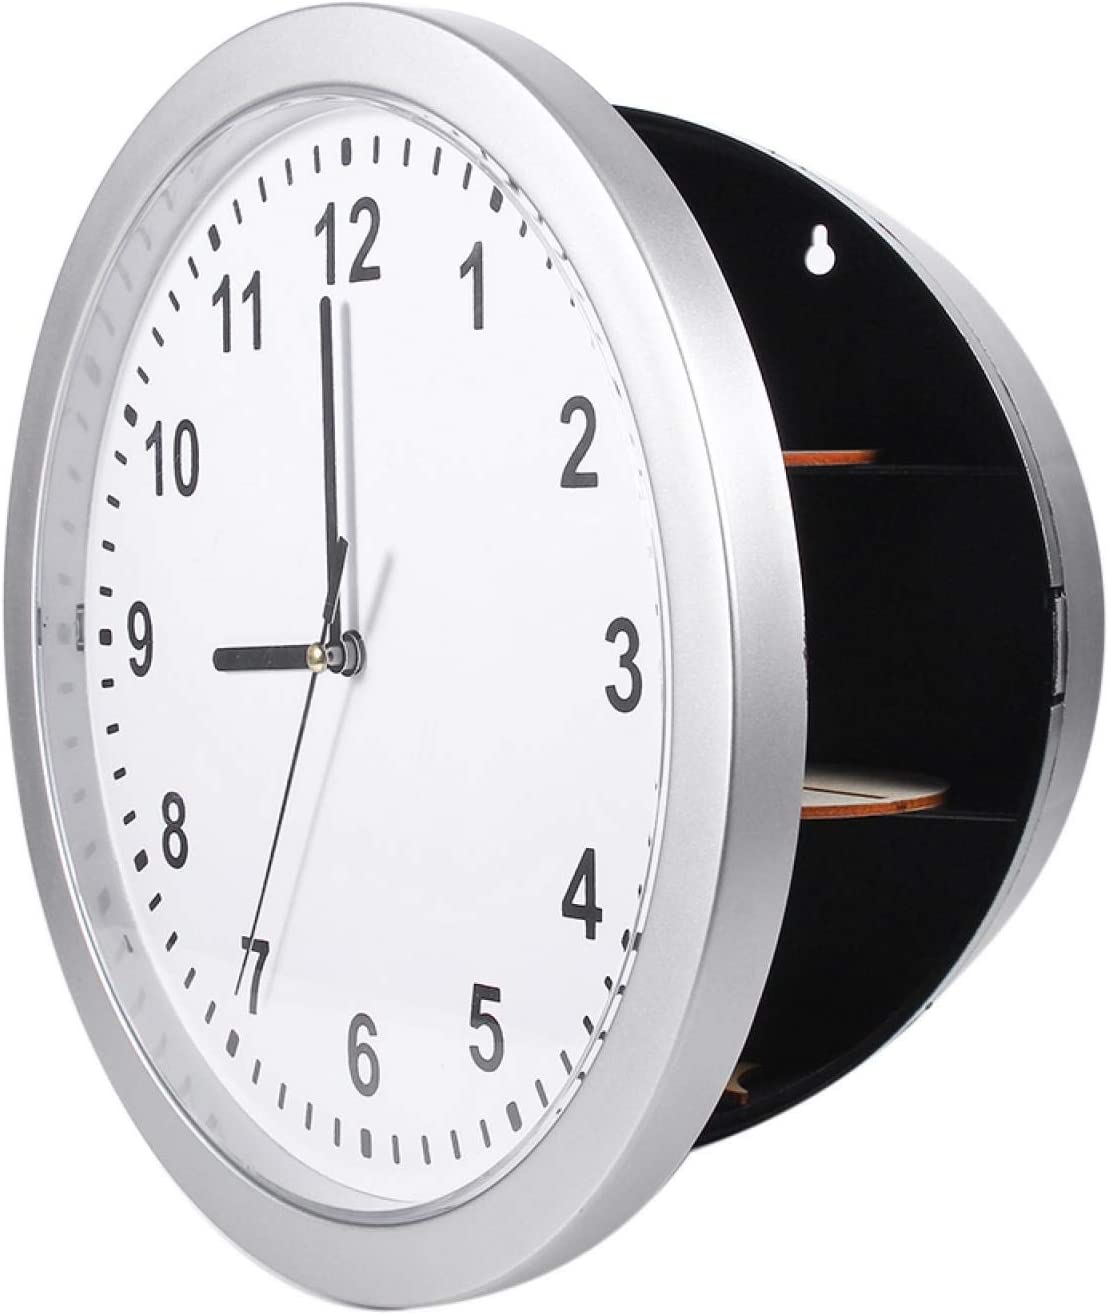 Free shipping / New Clock Safe favorite Concealed Secret Wall for Mo Box Container